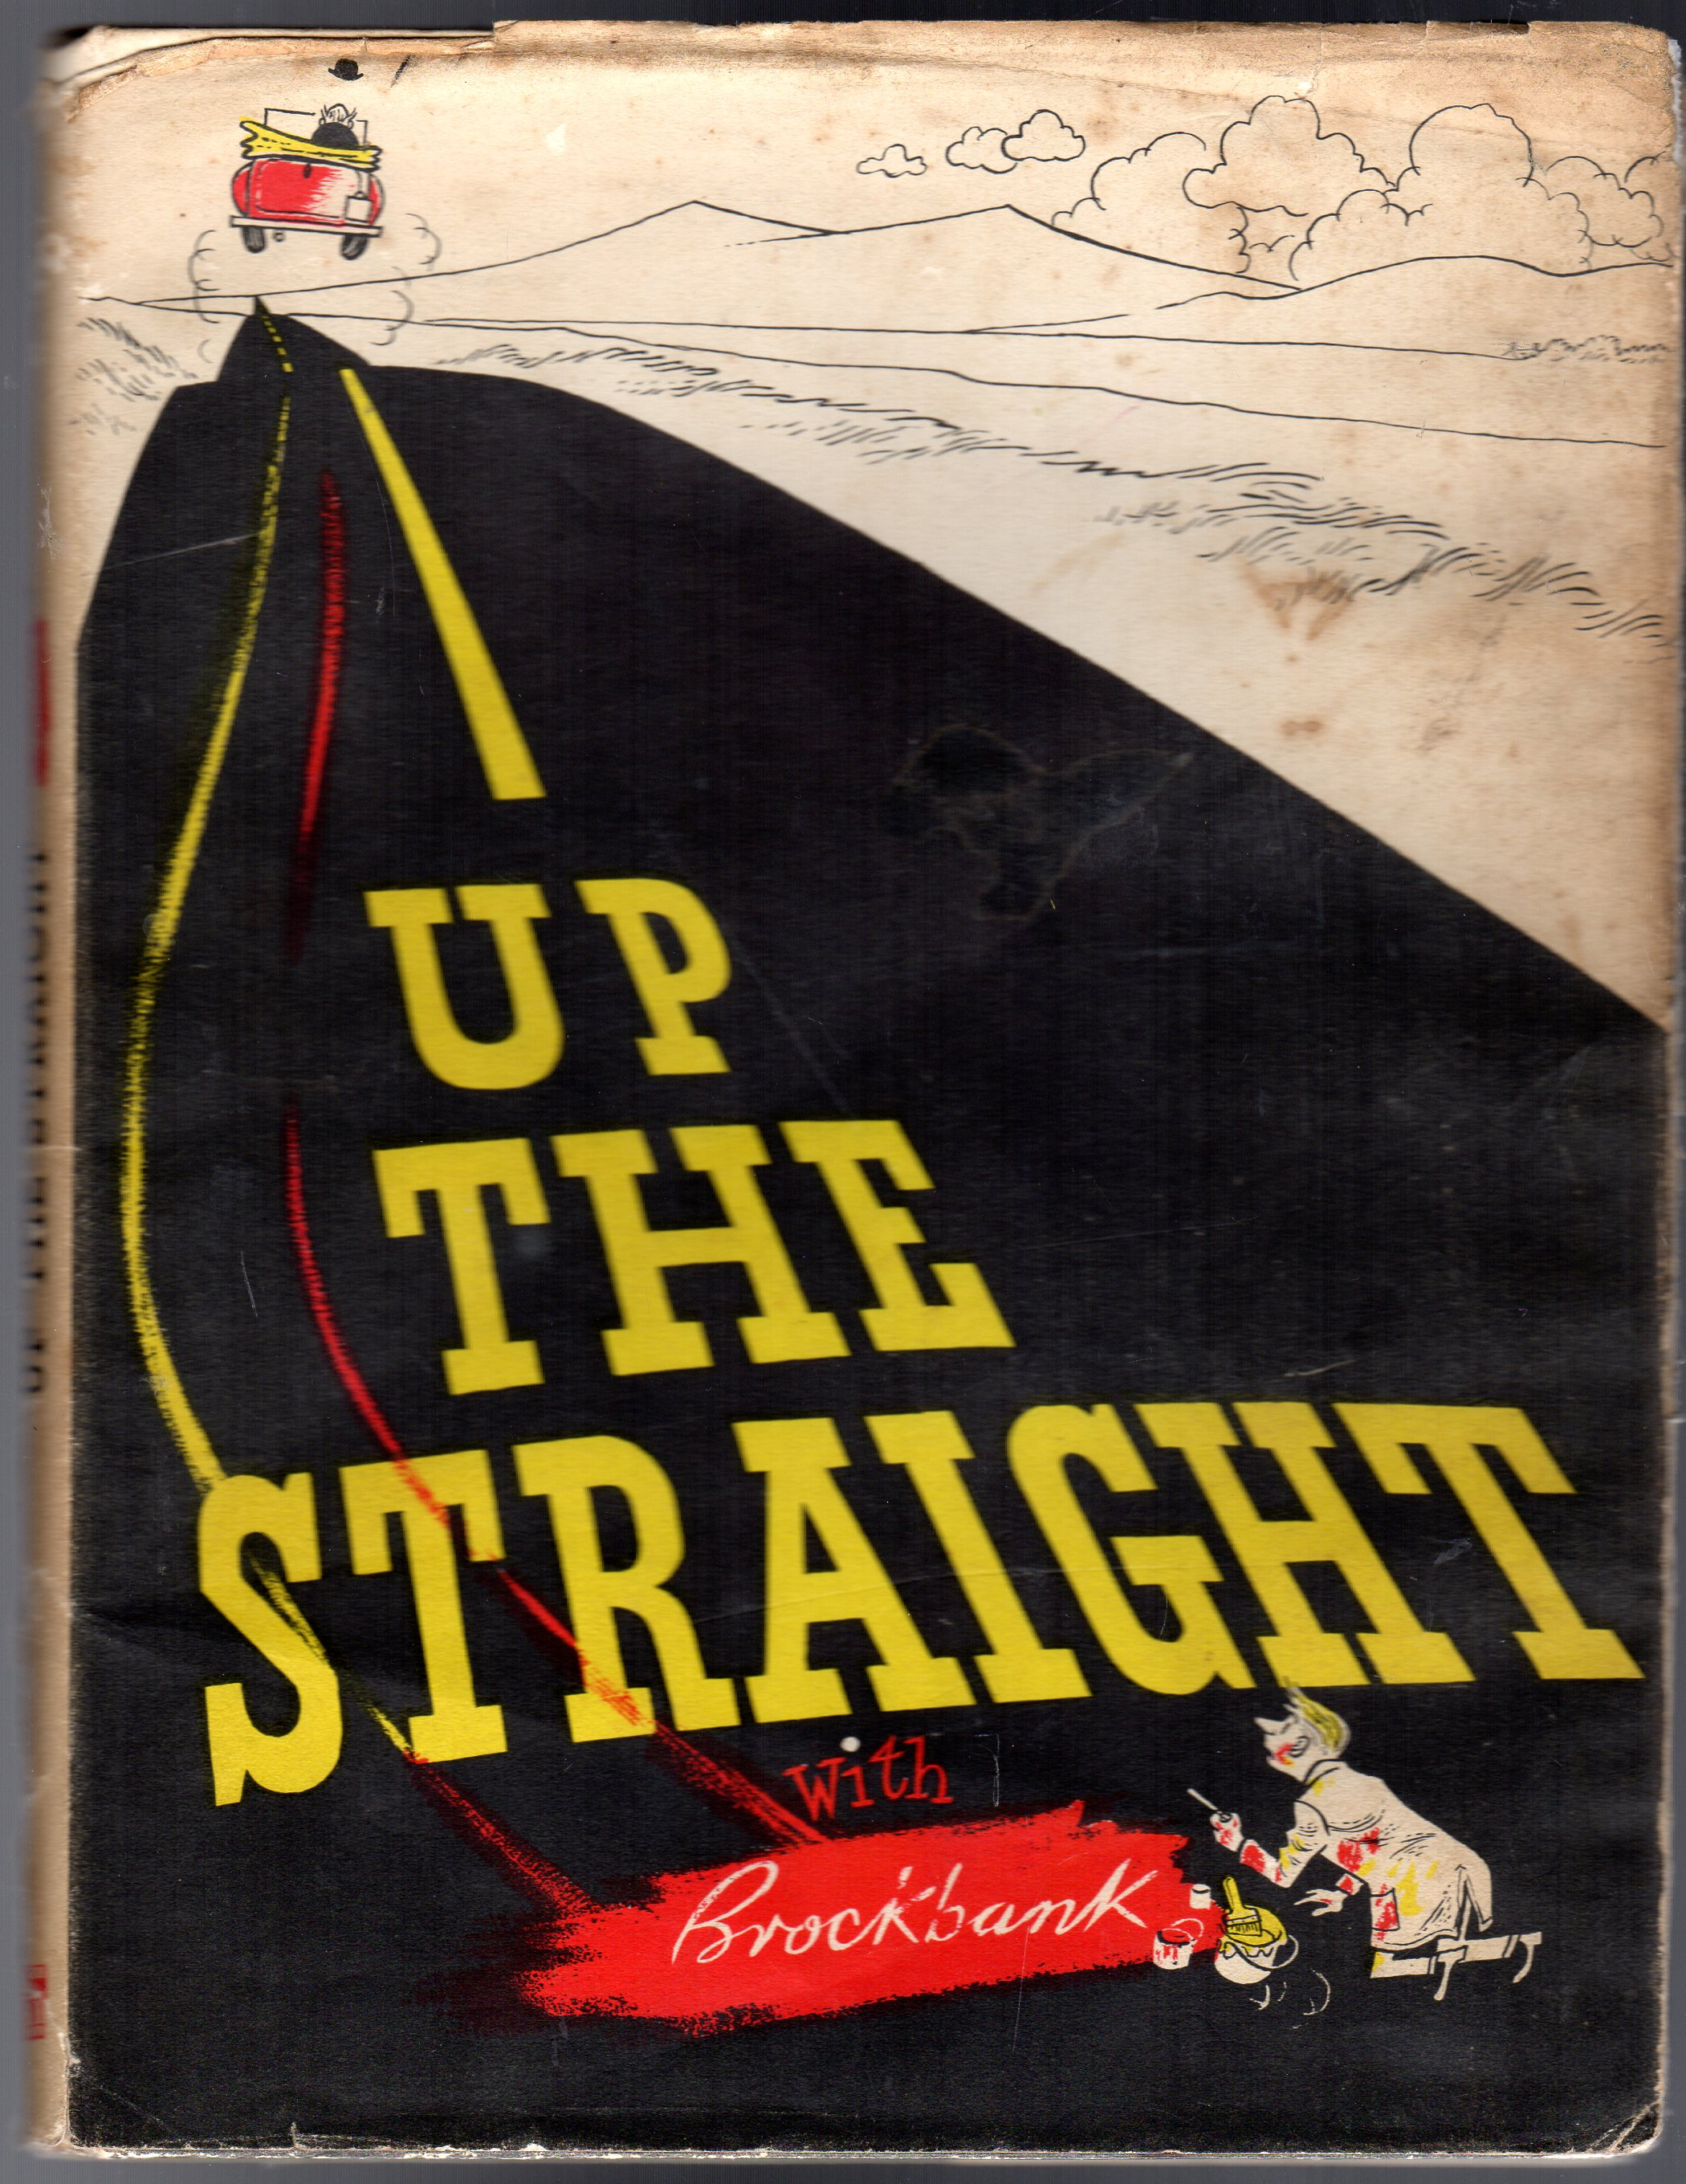 Image for Up The Straight With Brockbank